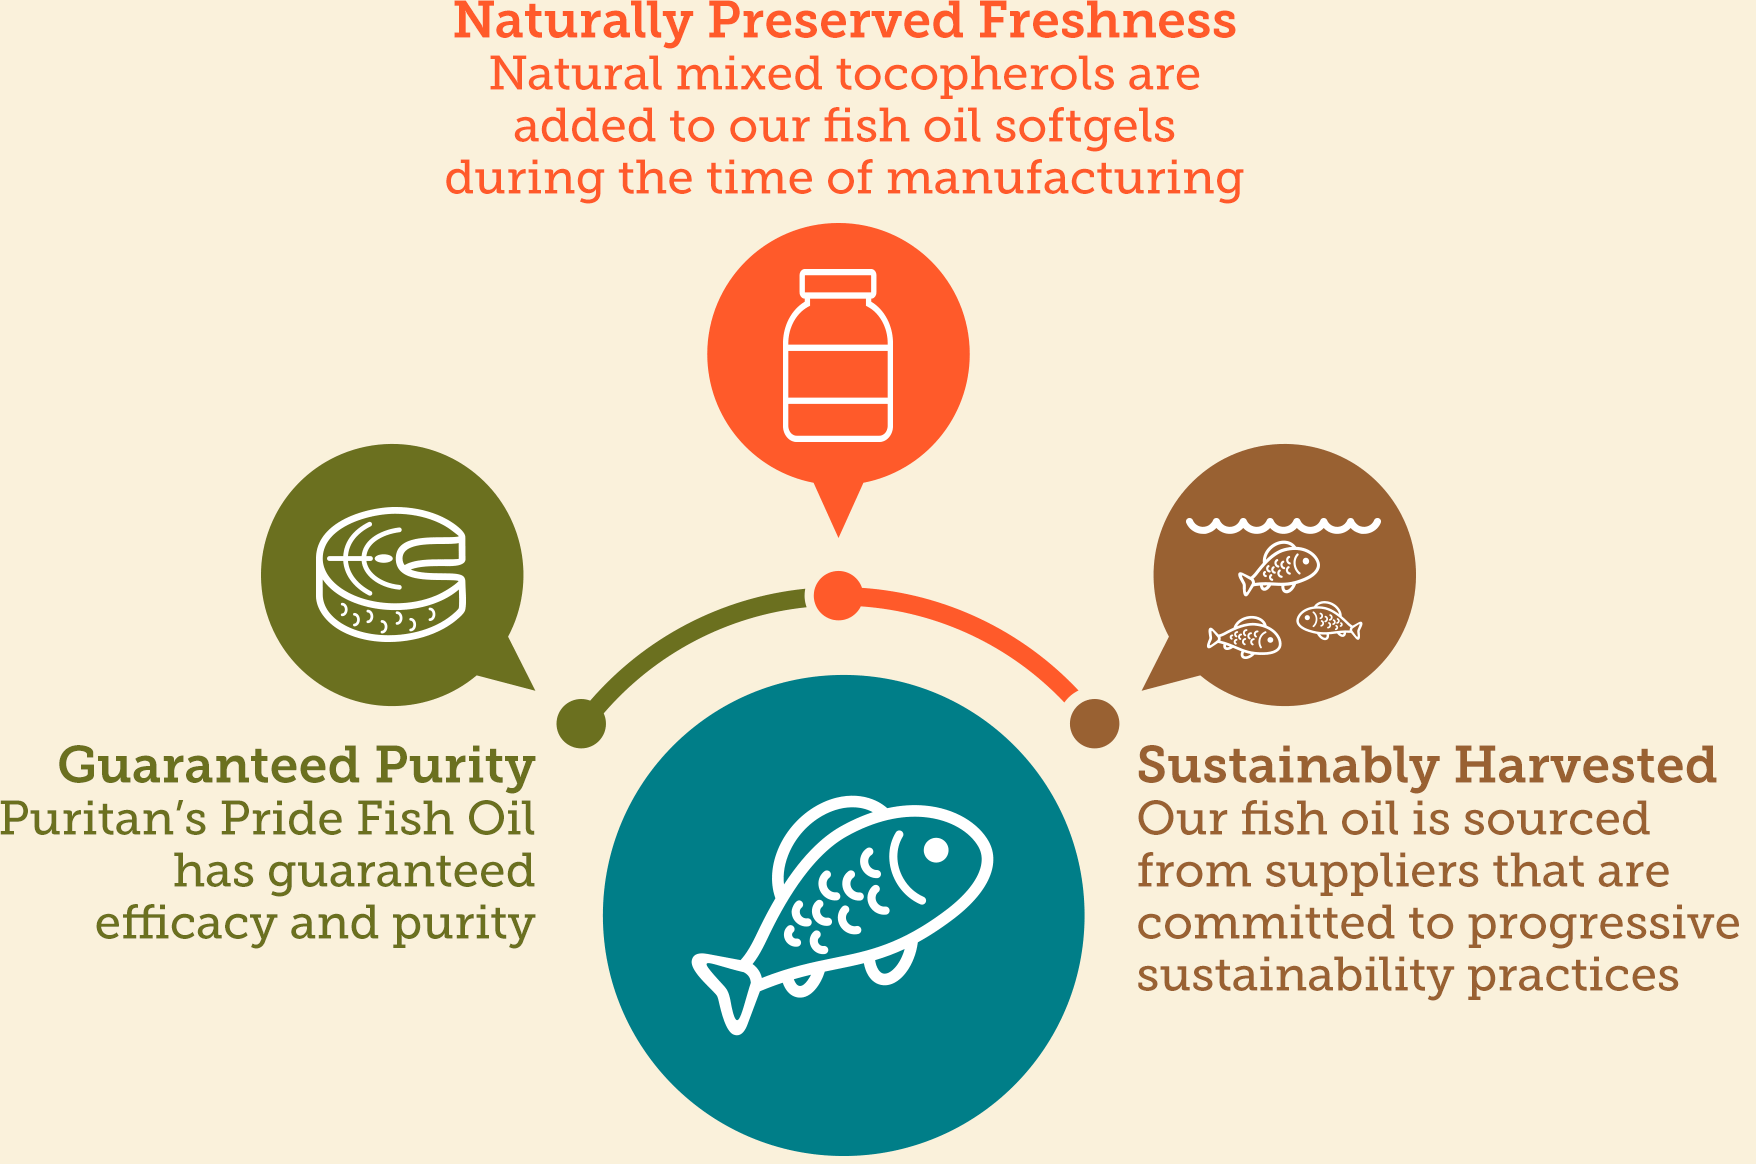 Infographic: Guaranteed Purity: No Mercury, PCBs, Dioxins, Sustainably Harvested and Naturally Preserved Freshness